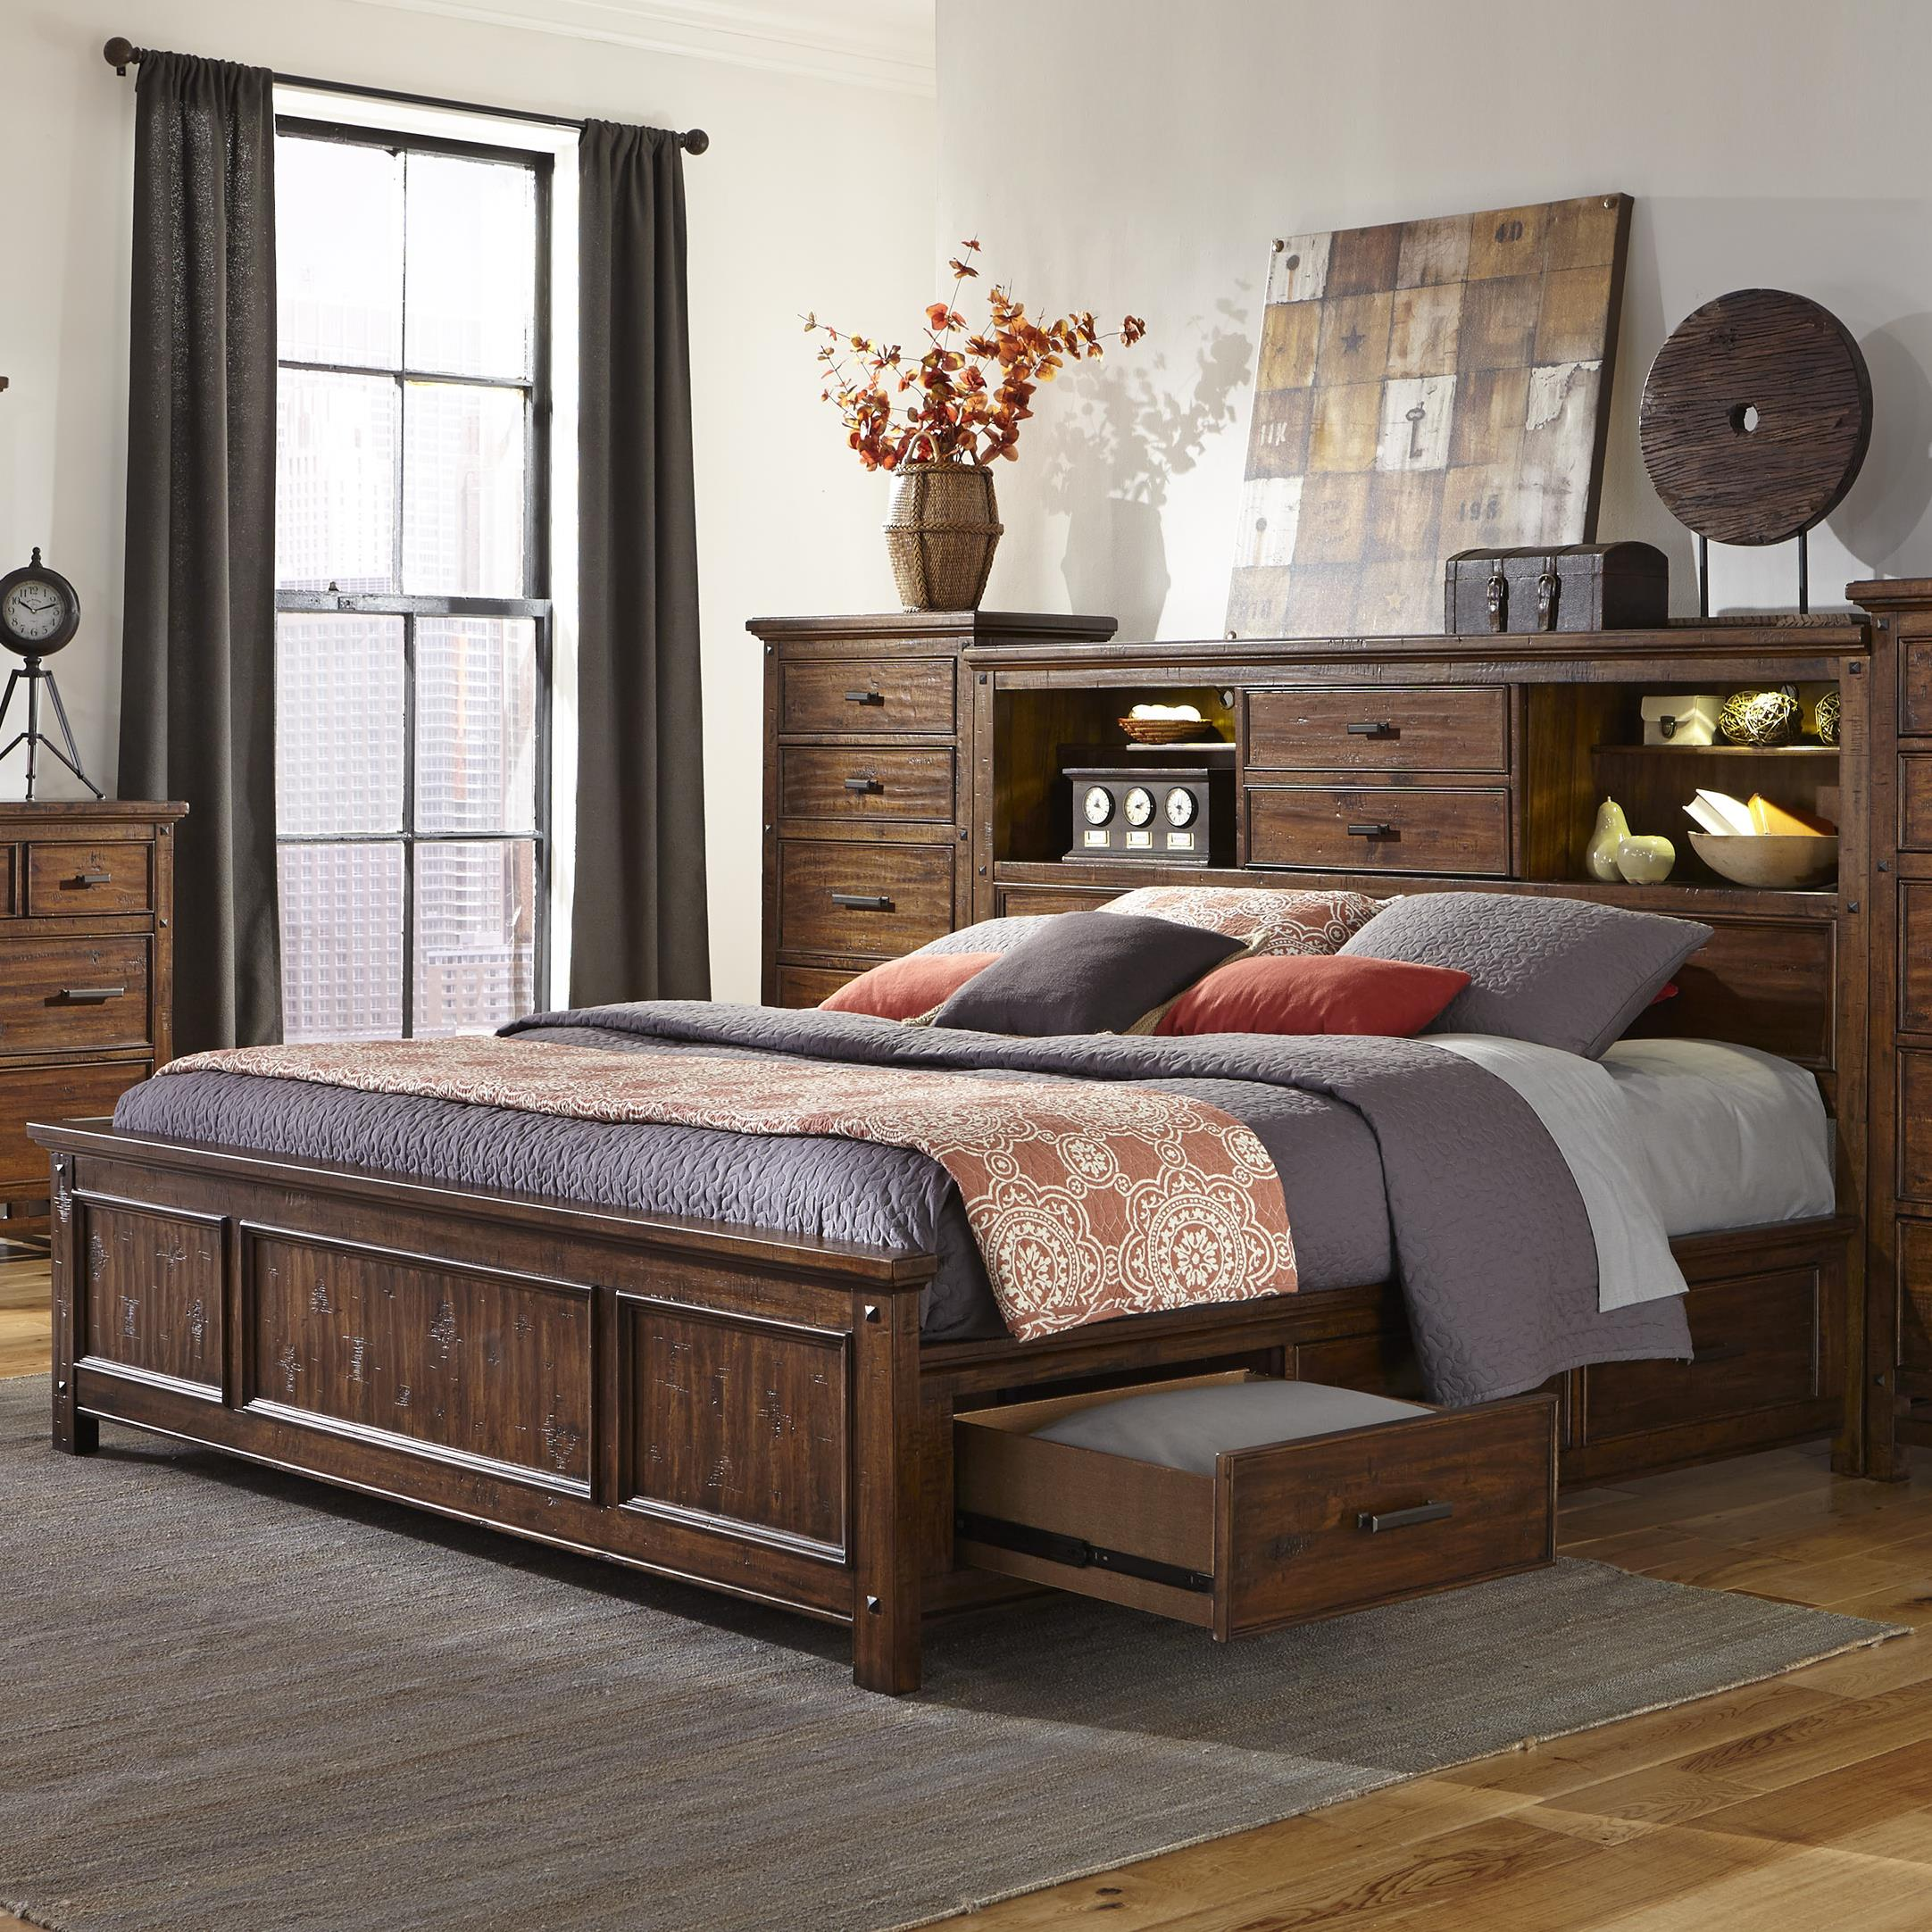 King Bookcase Bed with Storage